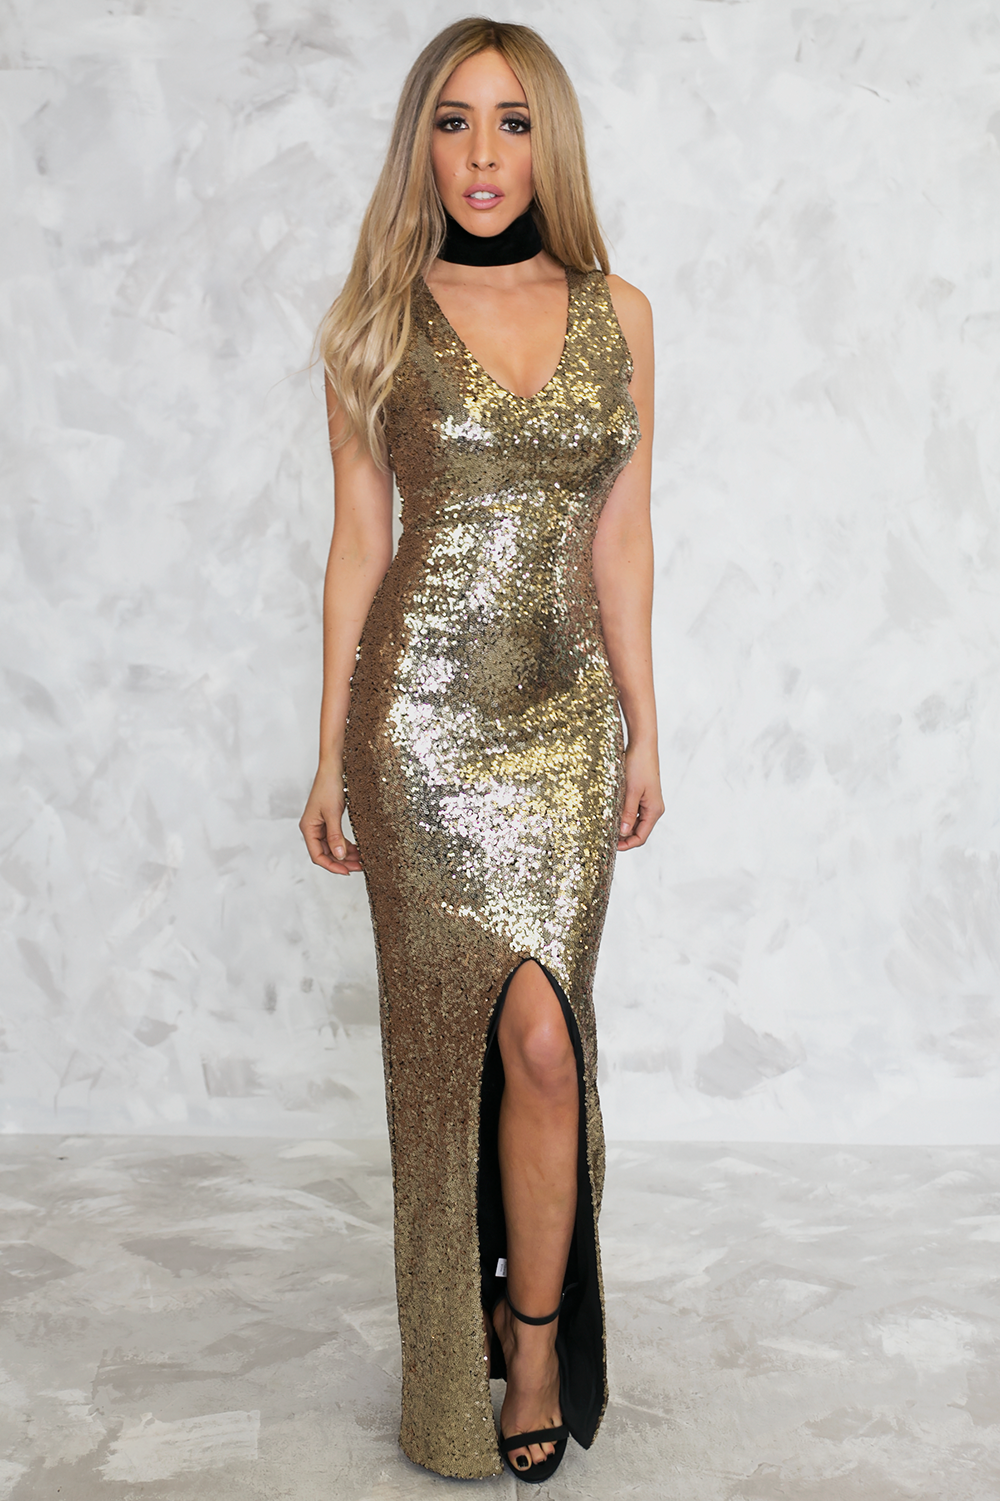 Solid Gold Sequin Slit Maxi Dress - Haute & Rebellious